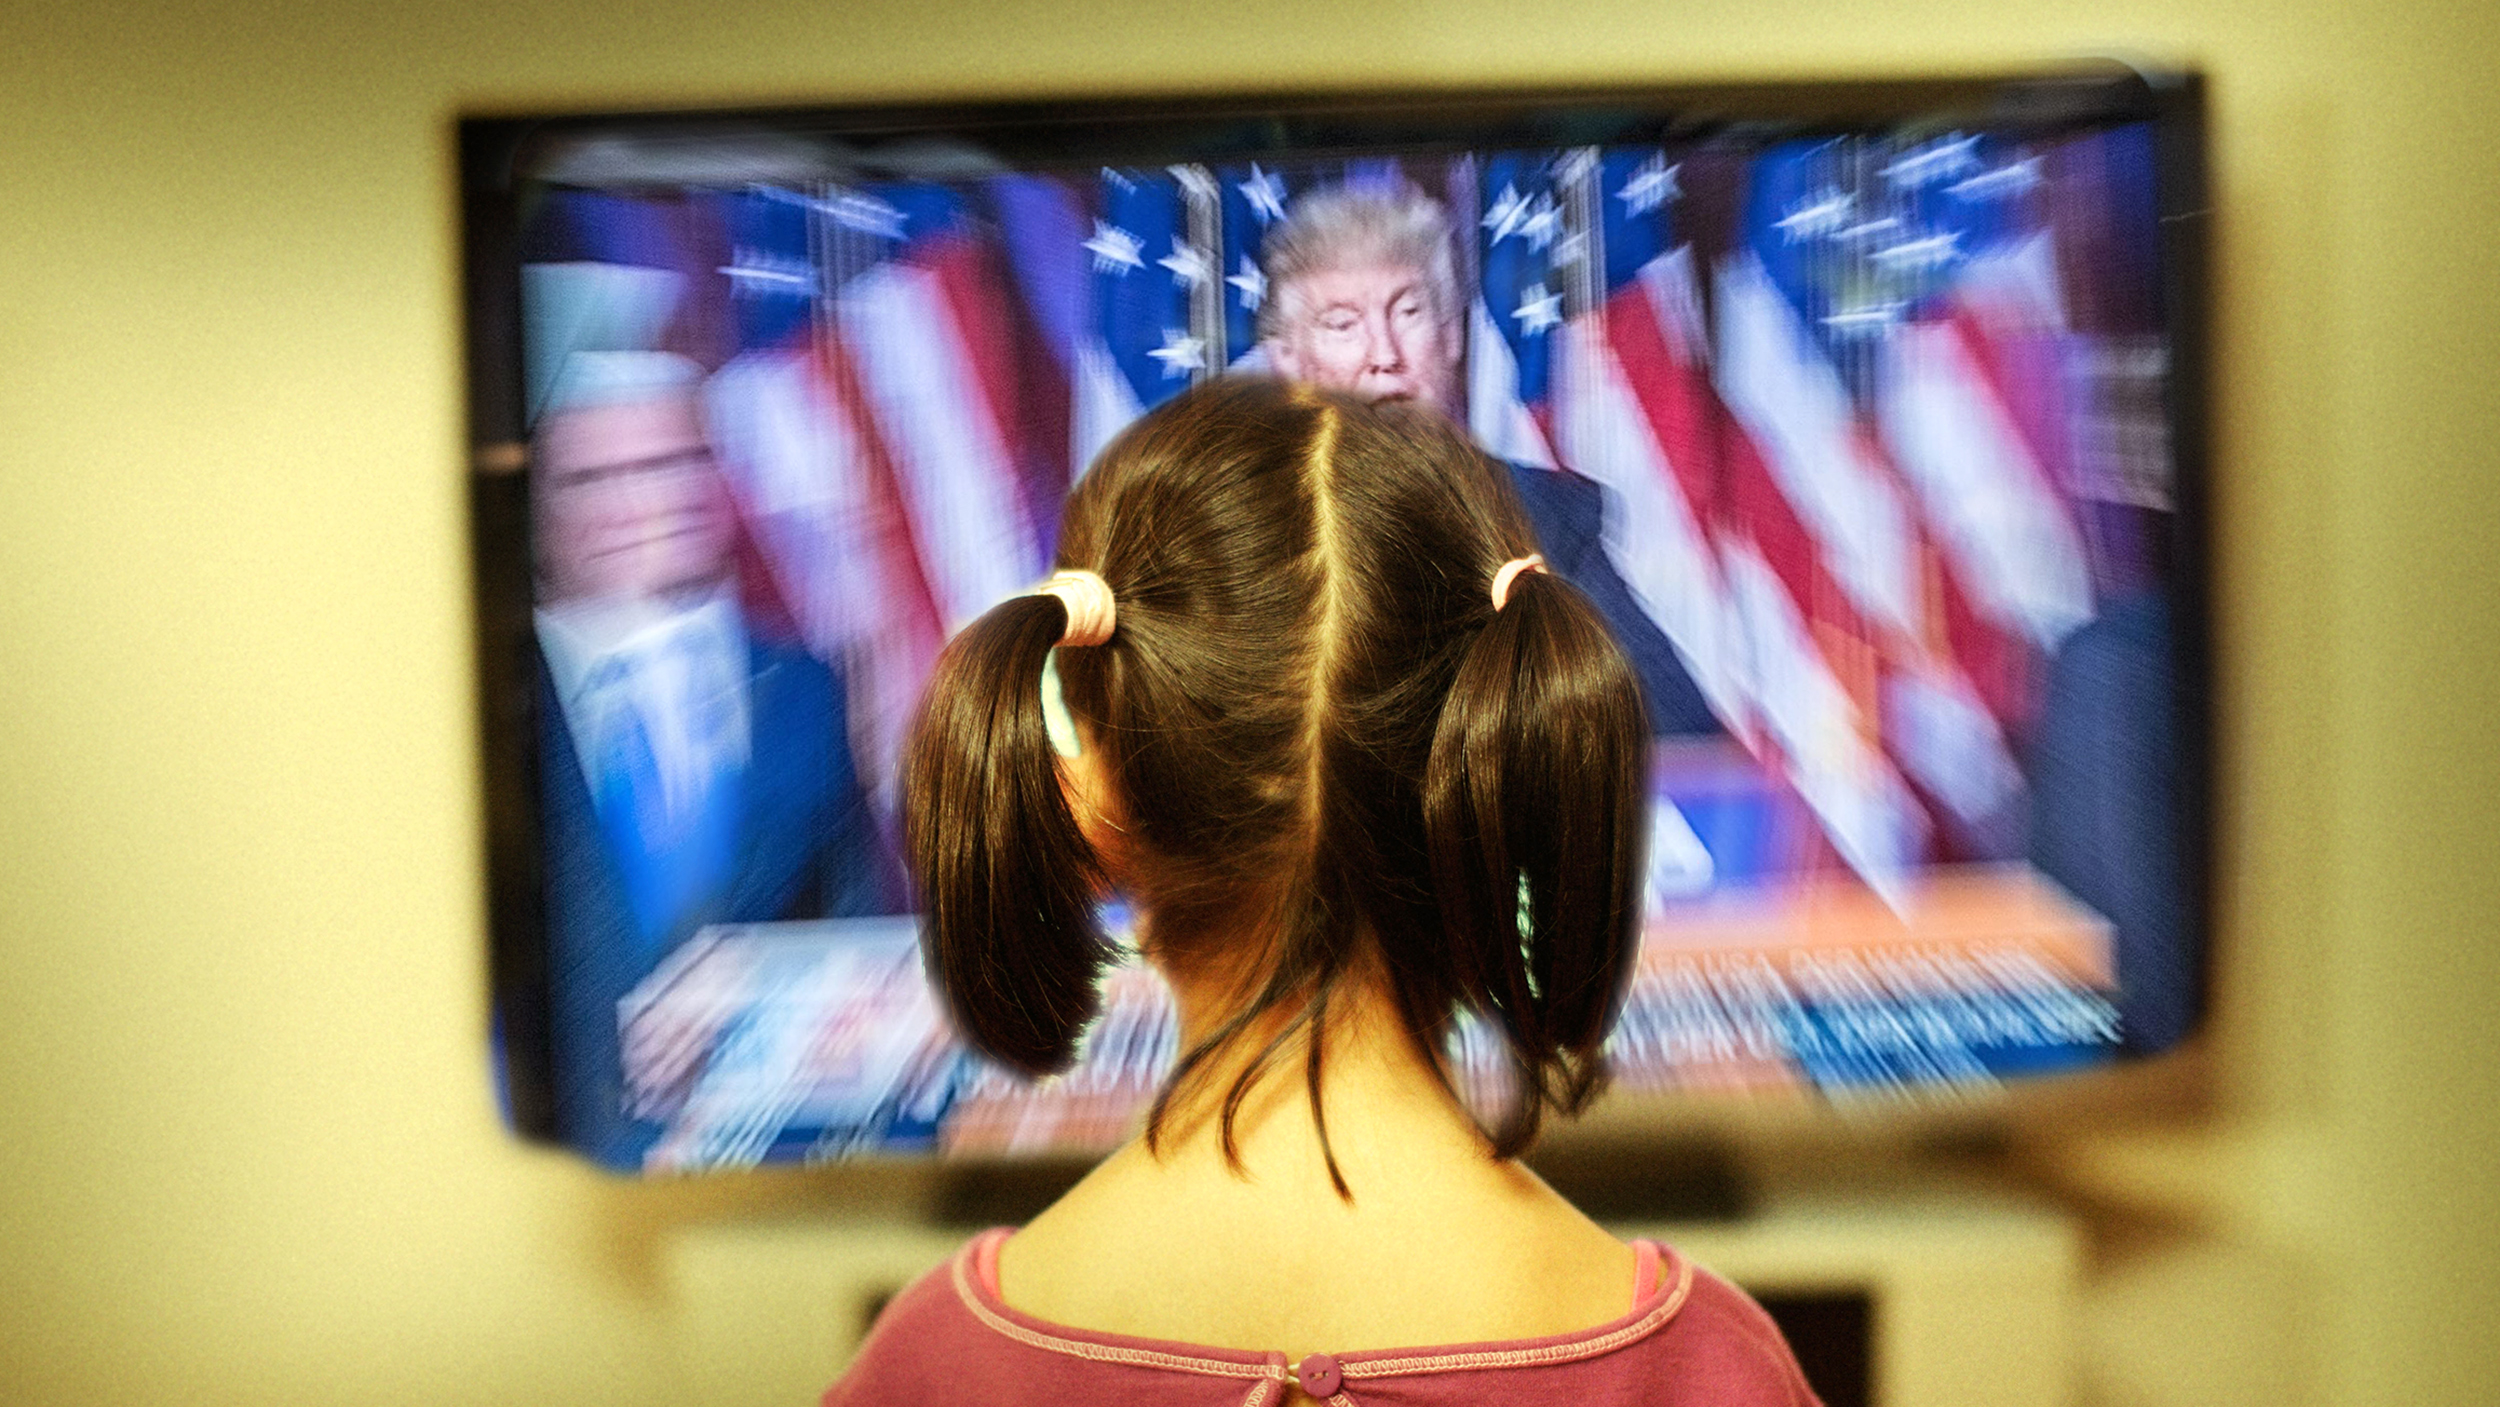 Experts weigh in: How to talk to your kids about the election results